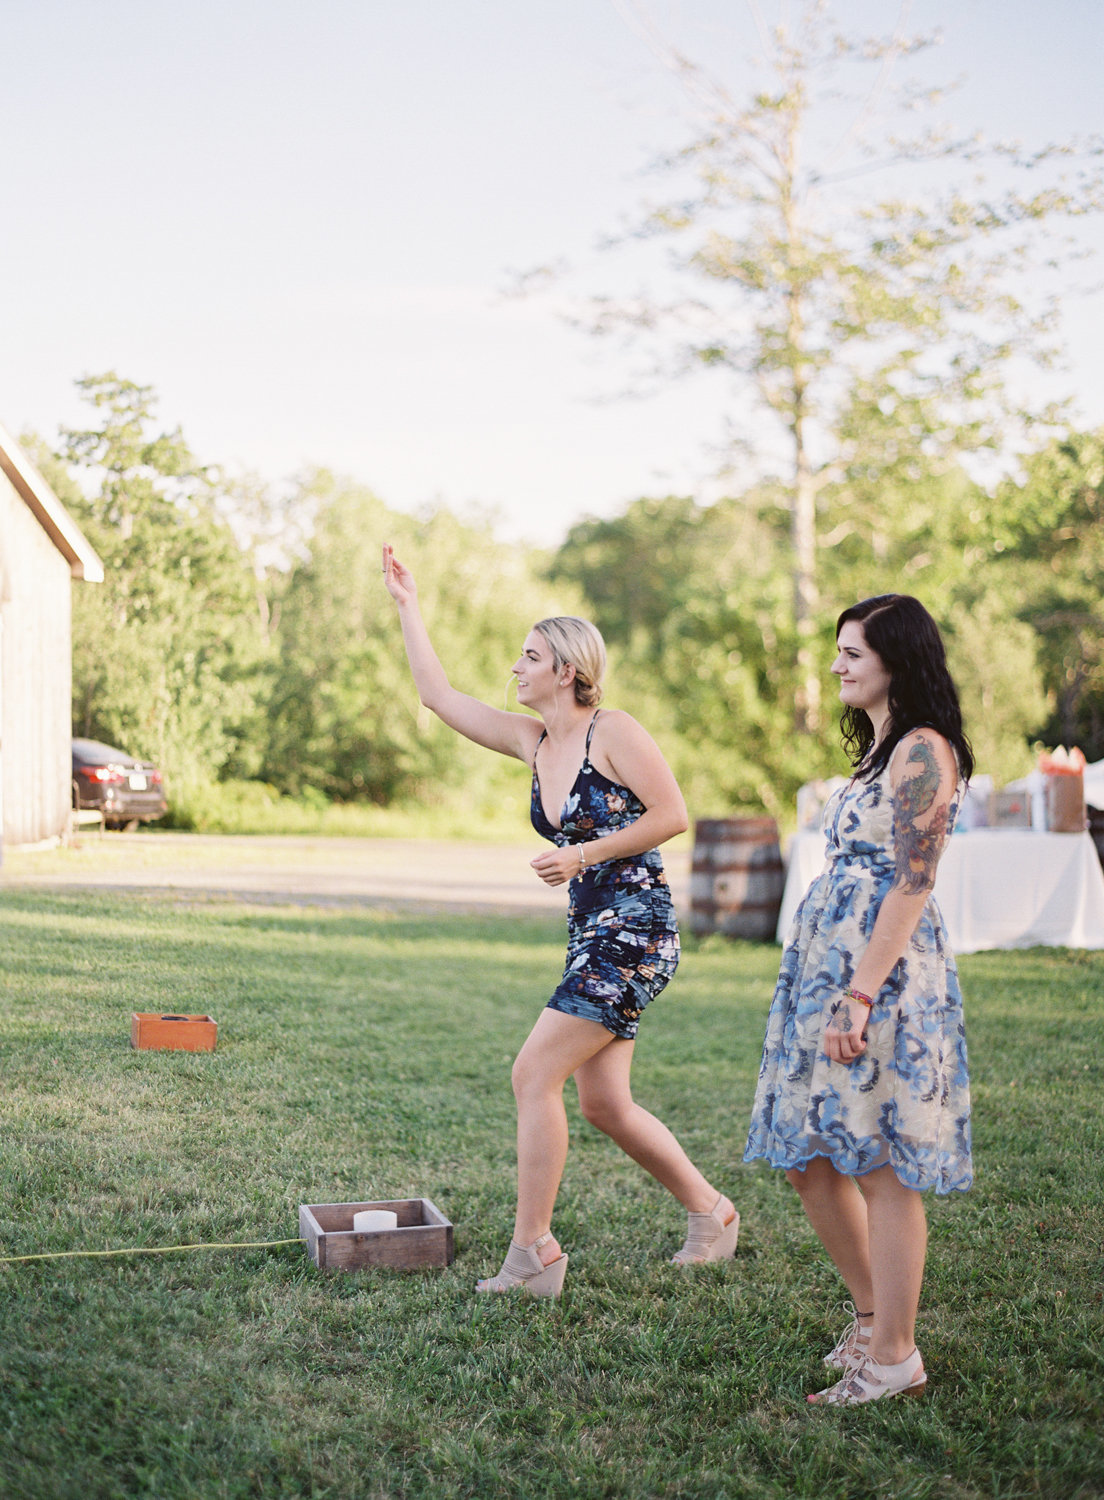 Jacqueline Anne Photography - Nova Scotia Backyard Wedding-58